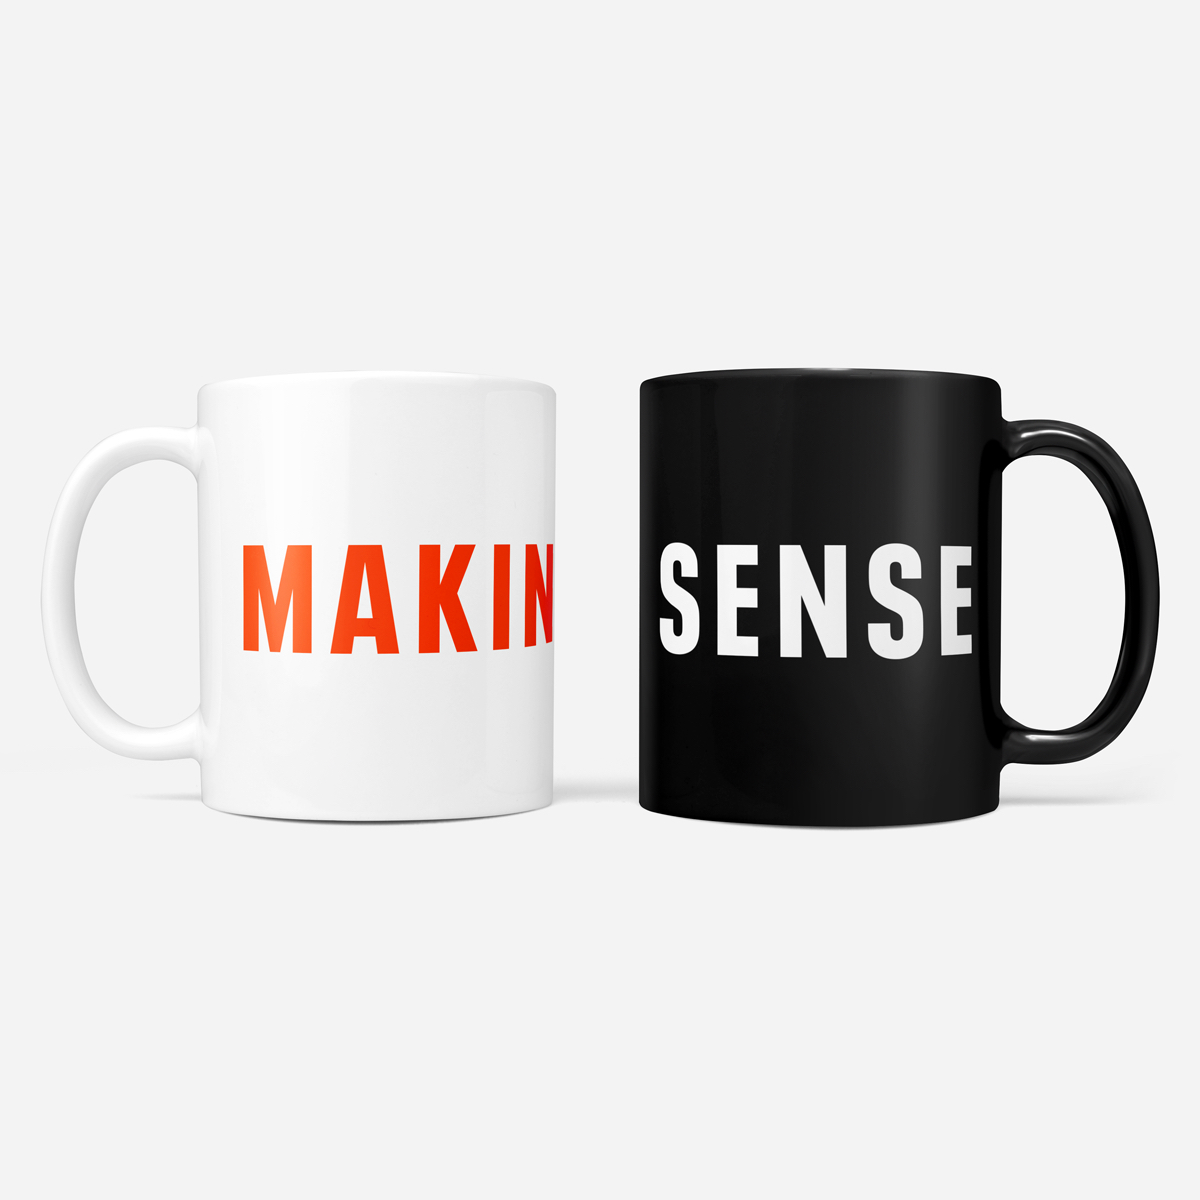 Making Sense Mug Set